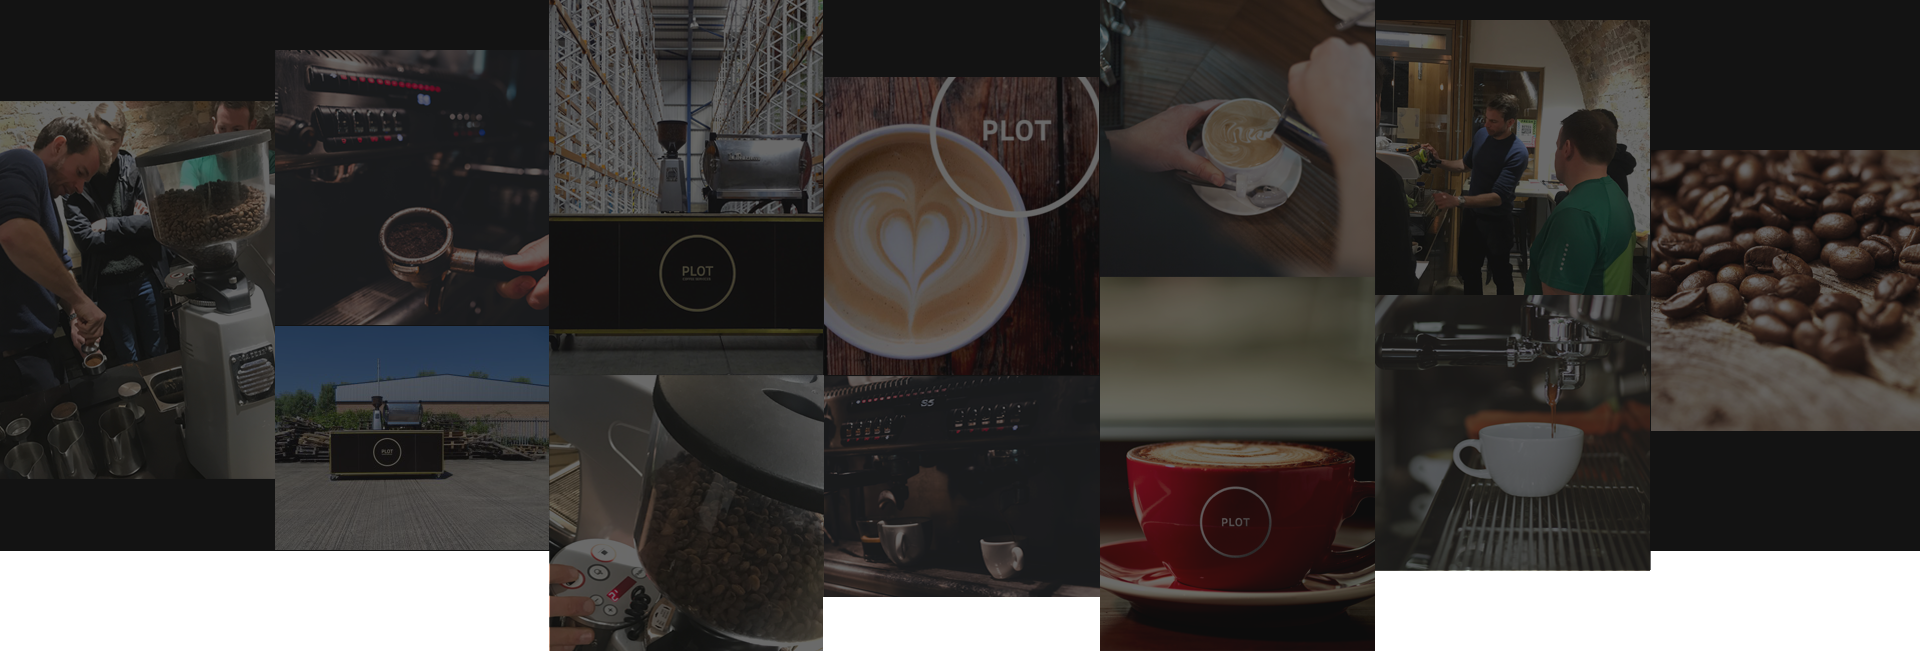 PLOT COFFEE | Barista Workshops London